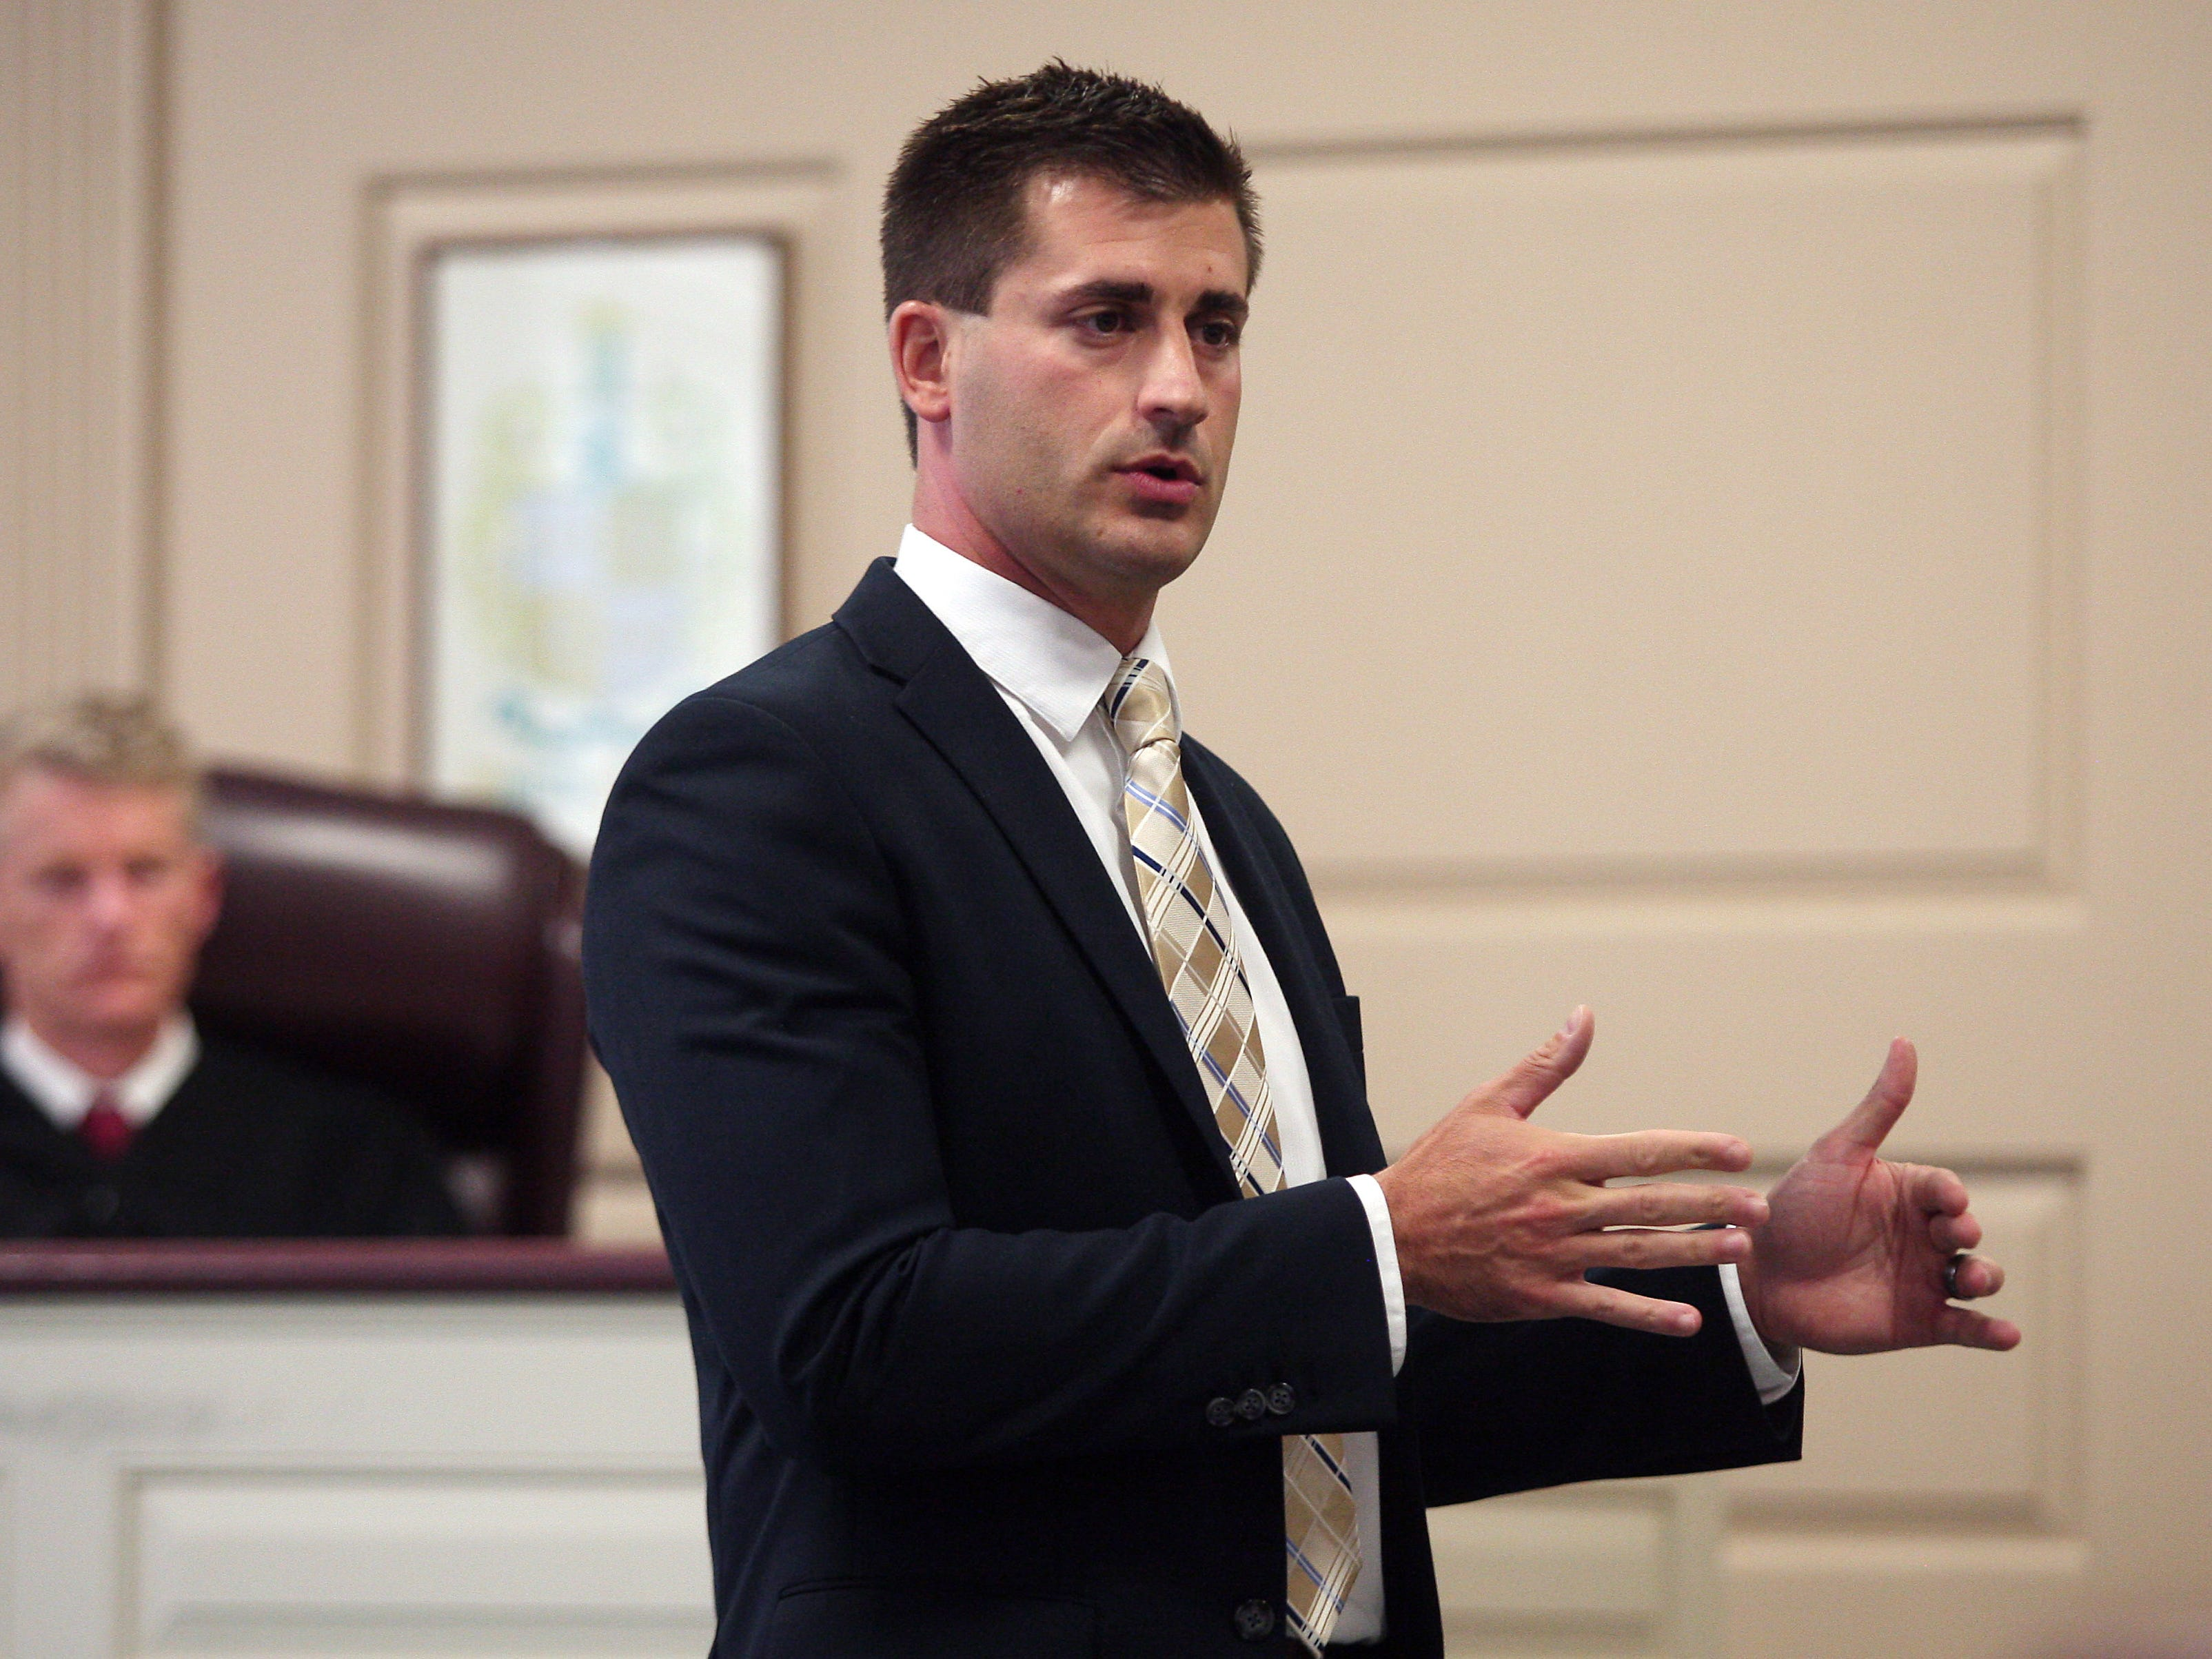 Morris County Assistant Prosecutor Matthew Troiano gives his opening statements in Morris County Superior Court during the Carlos Rojas murder trial, Rojas is charged with fatally beat Esteban Hernandez-Vazquez, 27, of North Bergen, on Aug. 3, 2011, in Fairview, Bergen County.  October 14, 2014, Morristown, NJ. Photo by Bob Karp